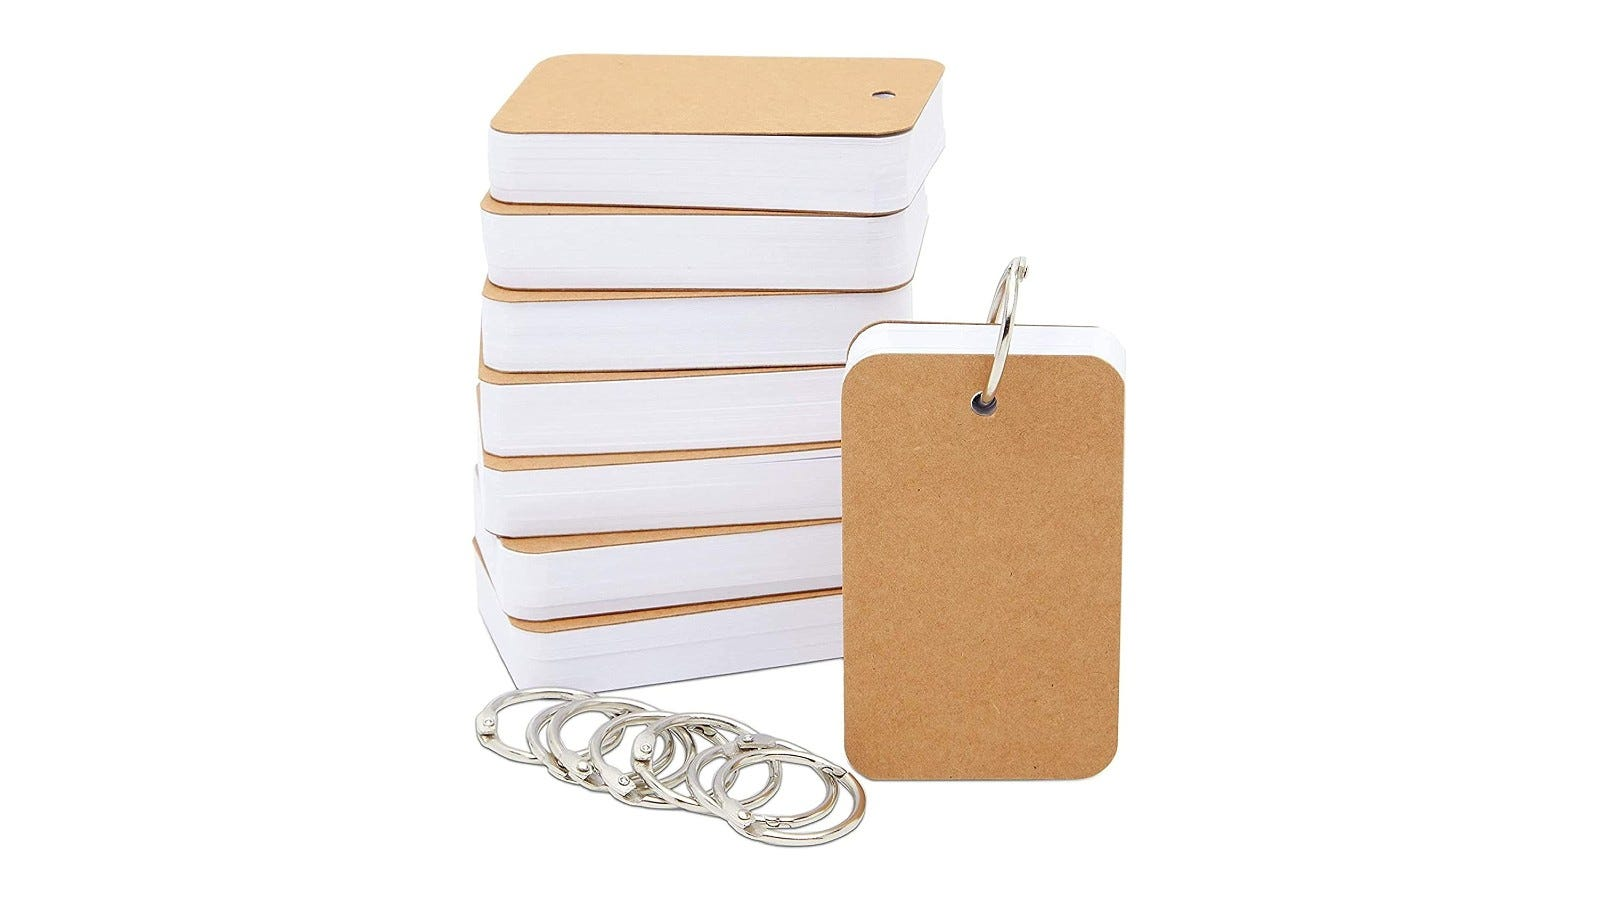 a stack of flashcards with rings and covers on each end of each stack